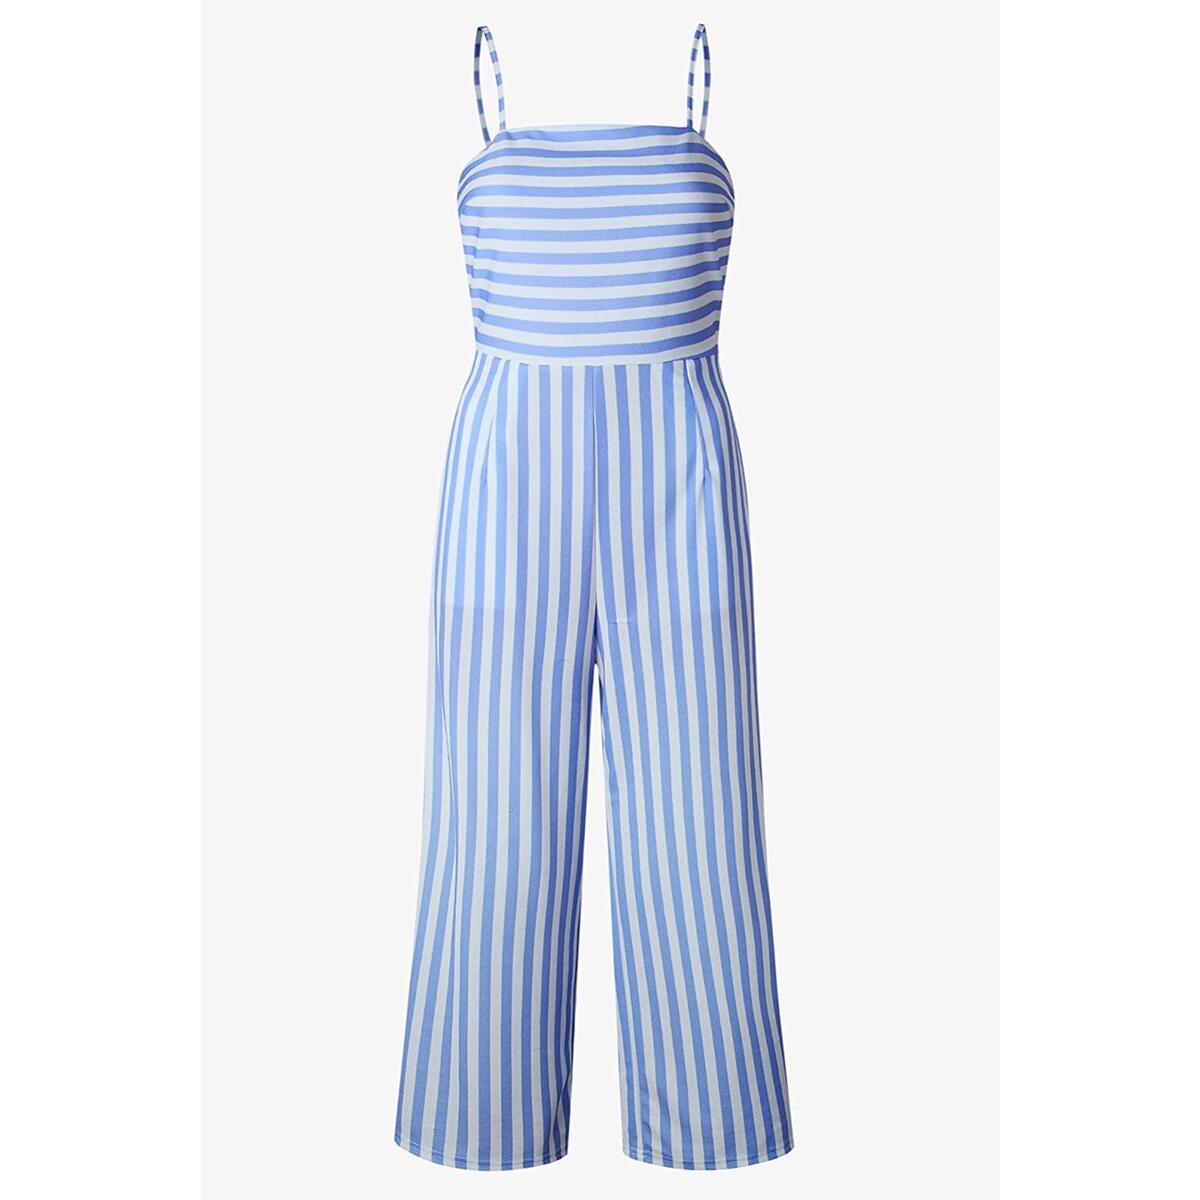 Alelly Women's Summer Jumpsuits Striped Tie Back Sleeveless Backless Wide Long Pants Rompers